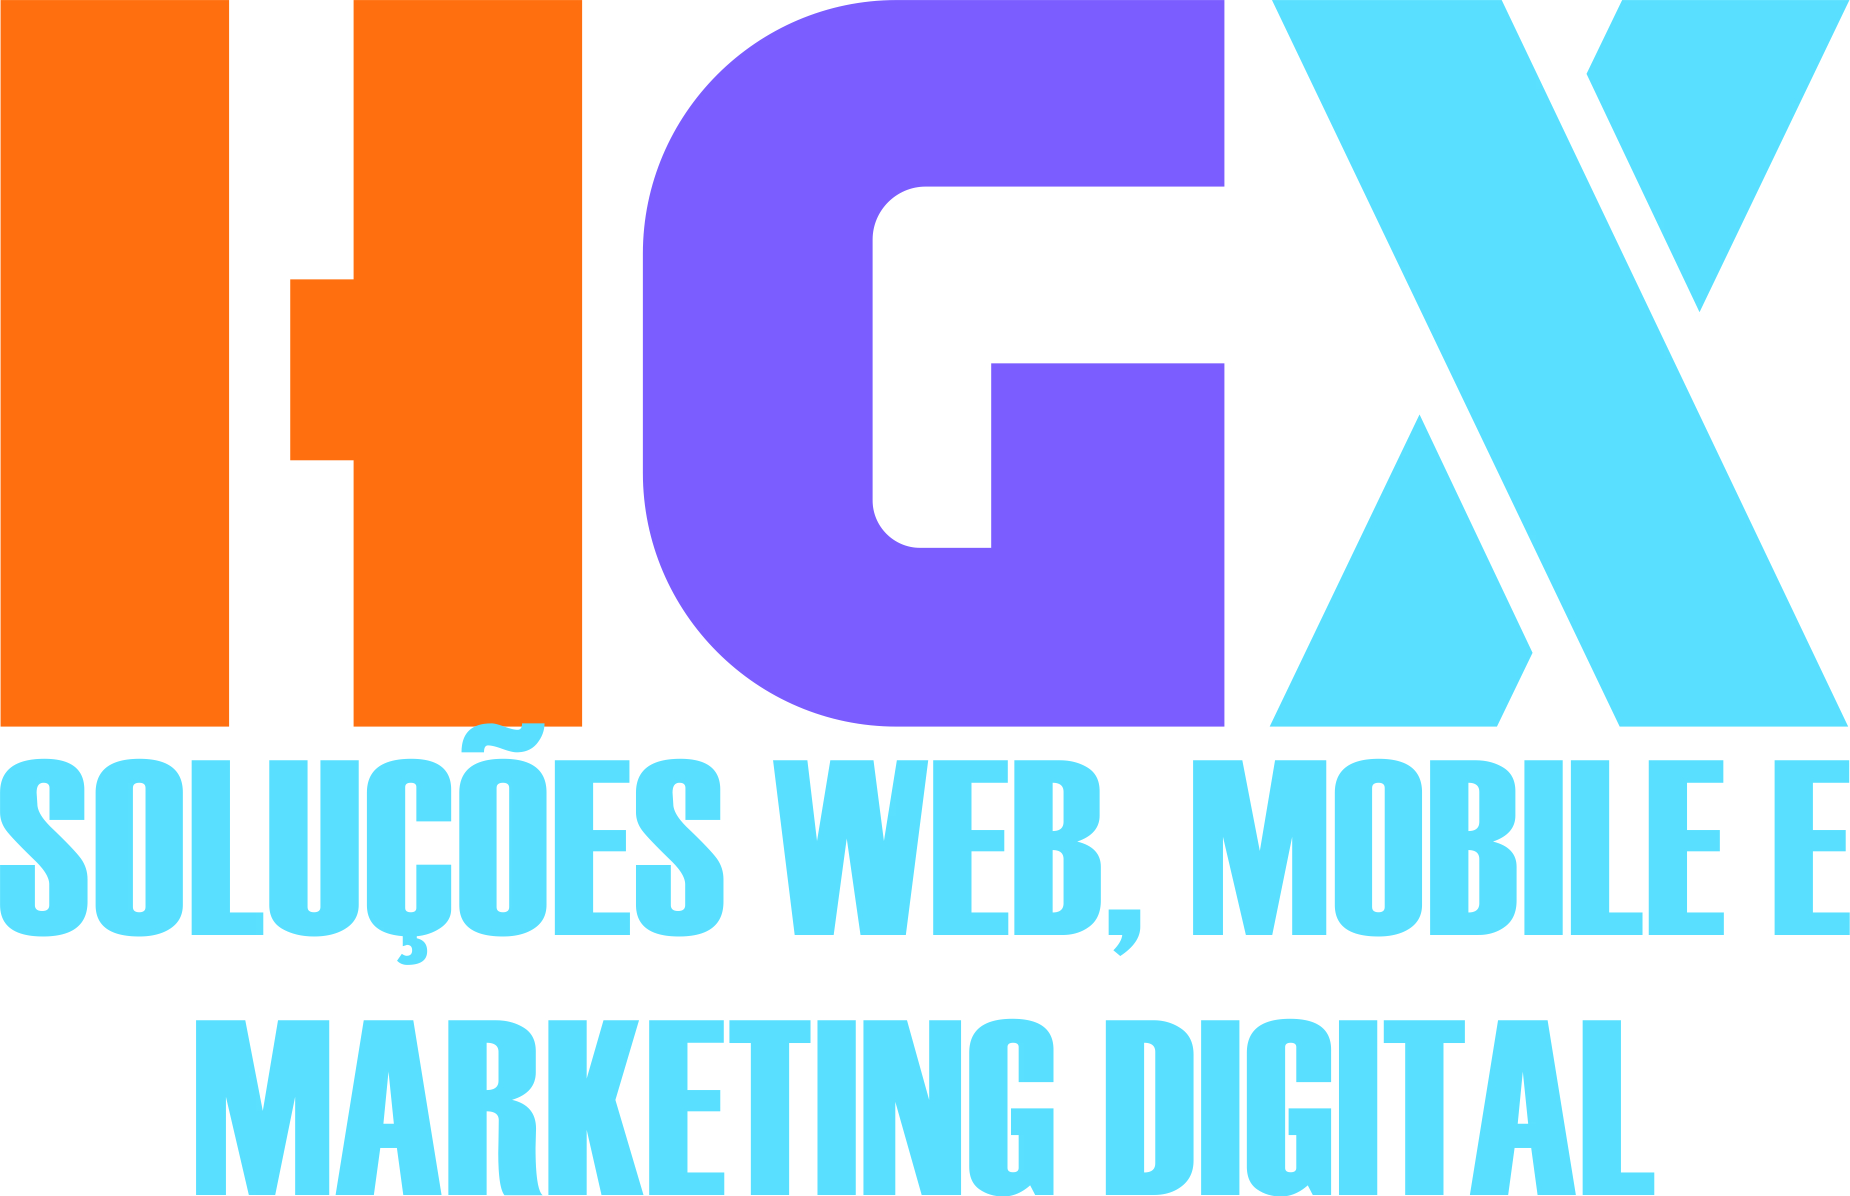 HGX-Solucoes-WEB-Mobile-e-MarketingDigital